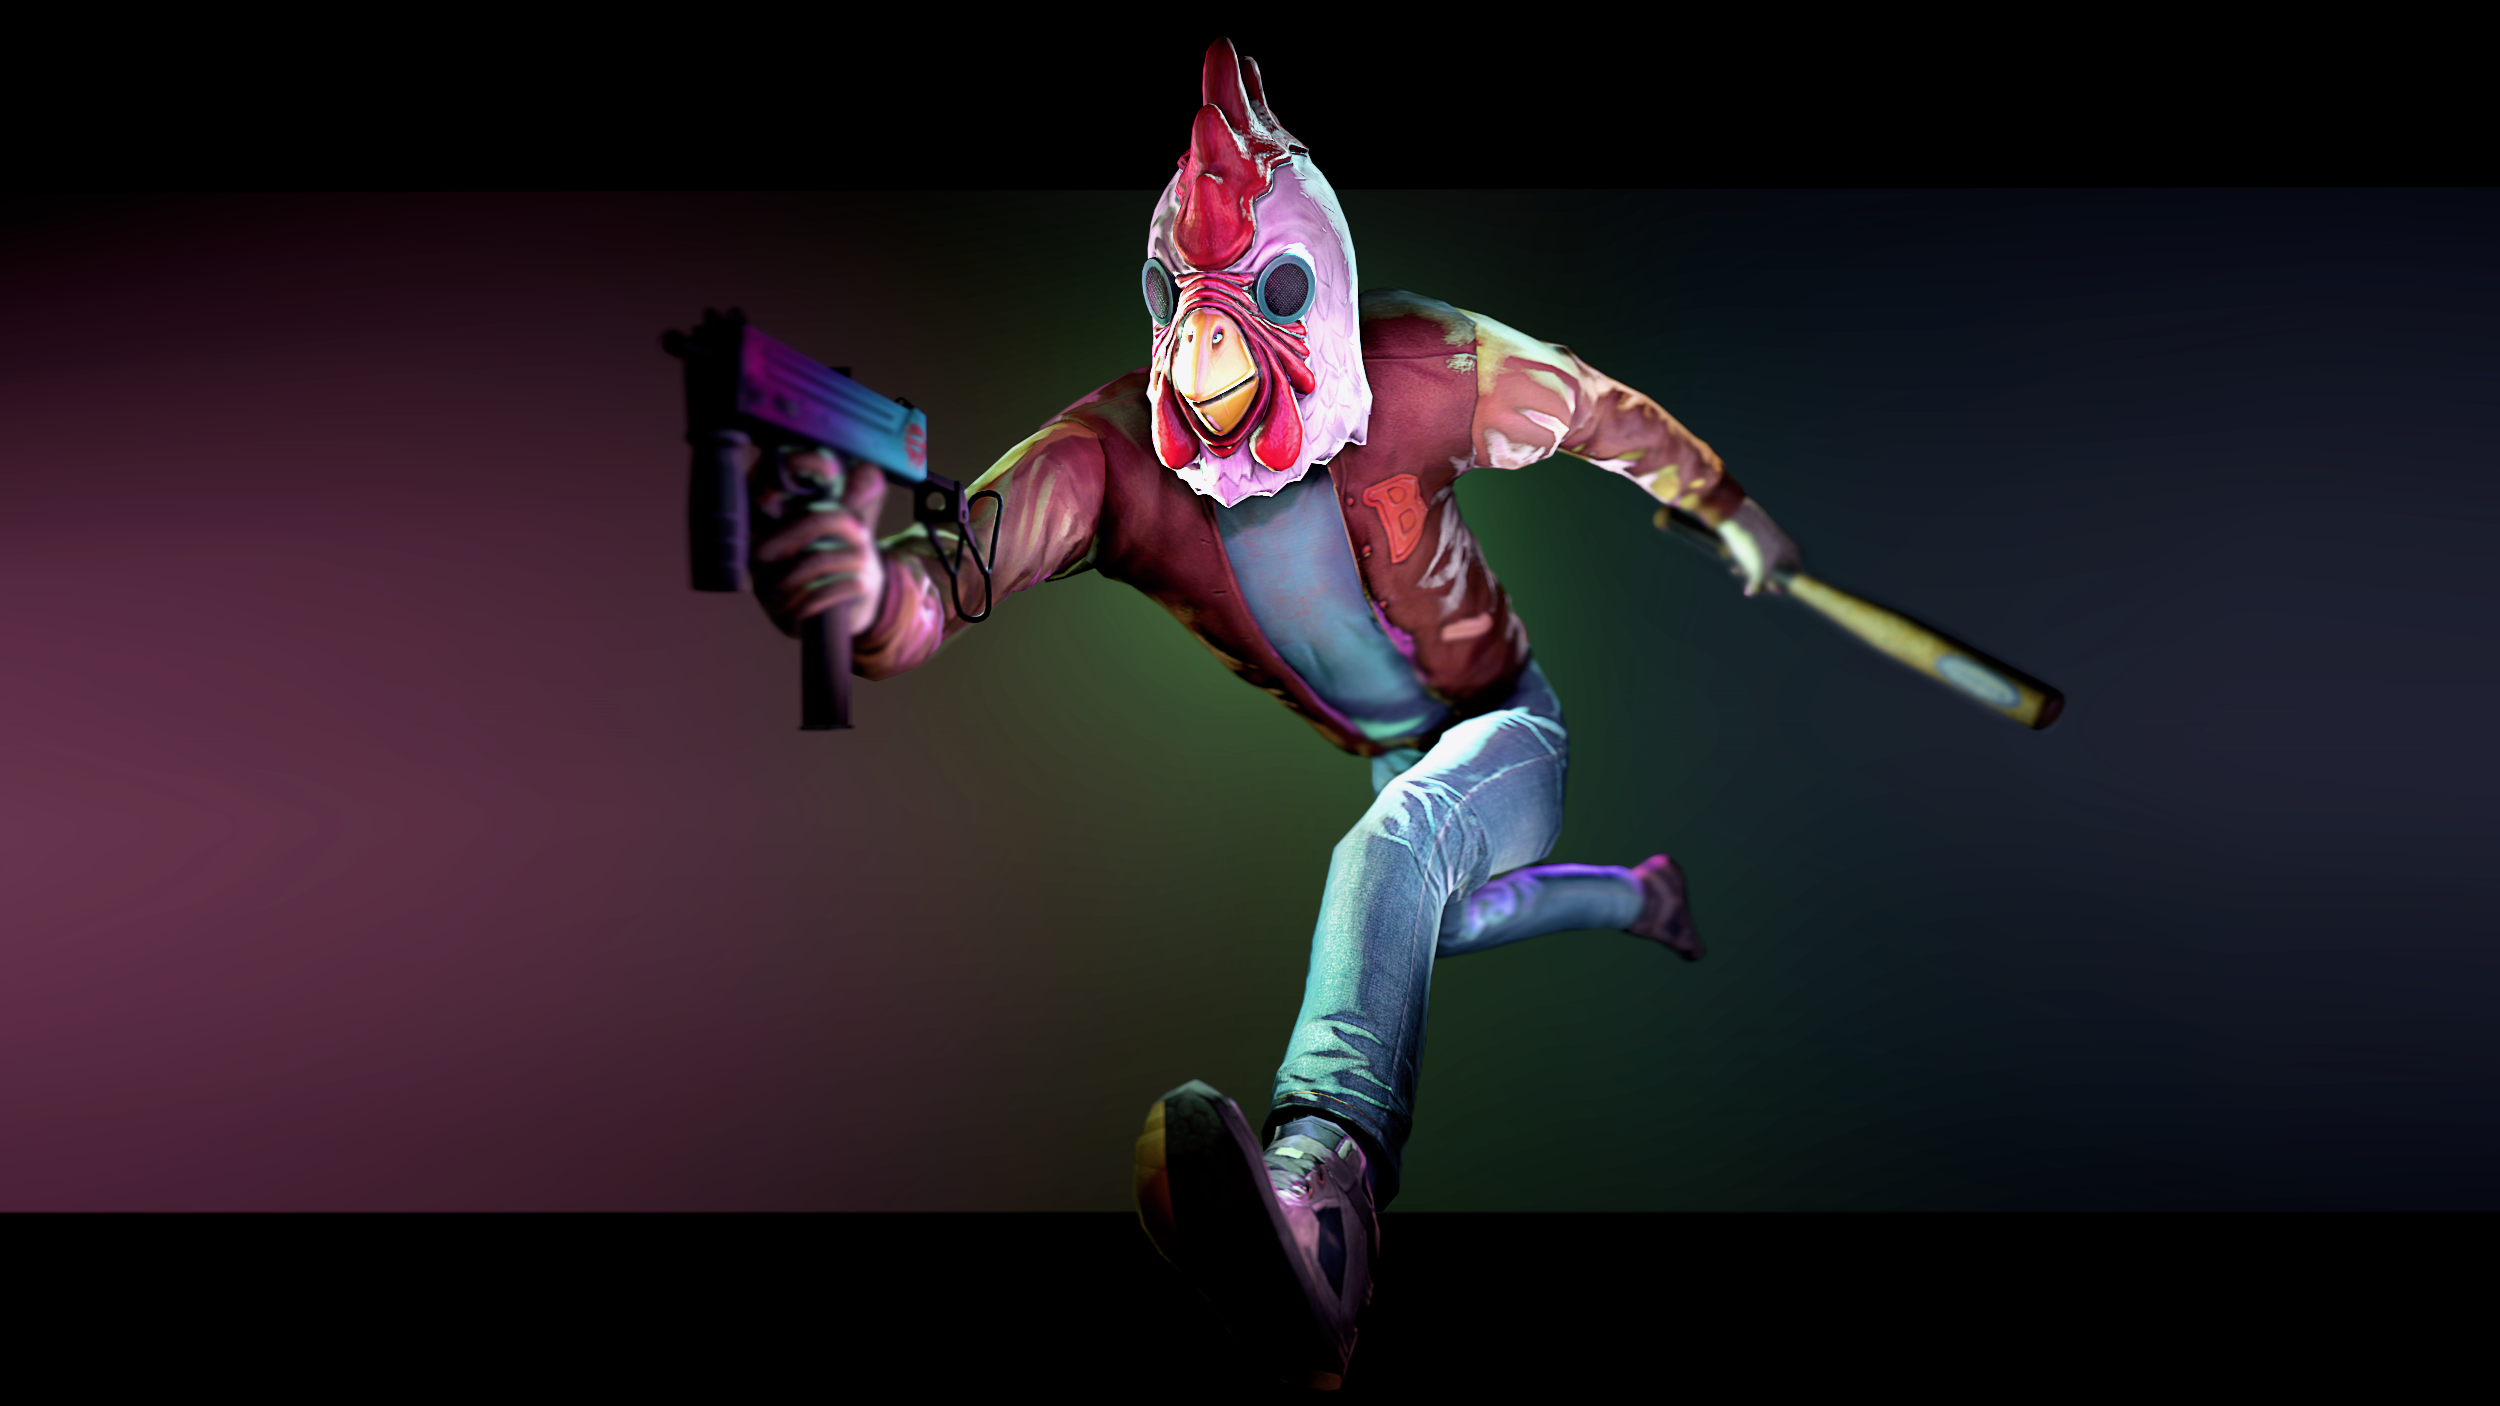 payday 2 how to get jacvket